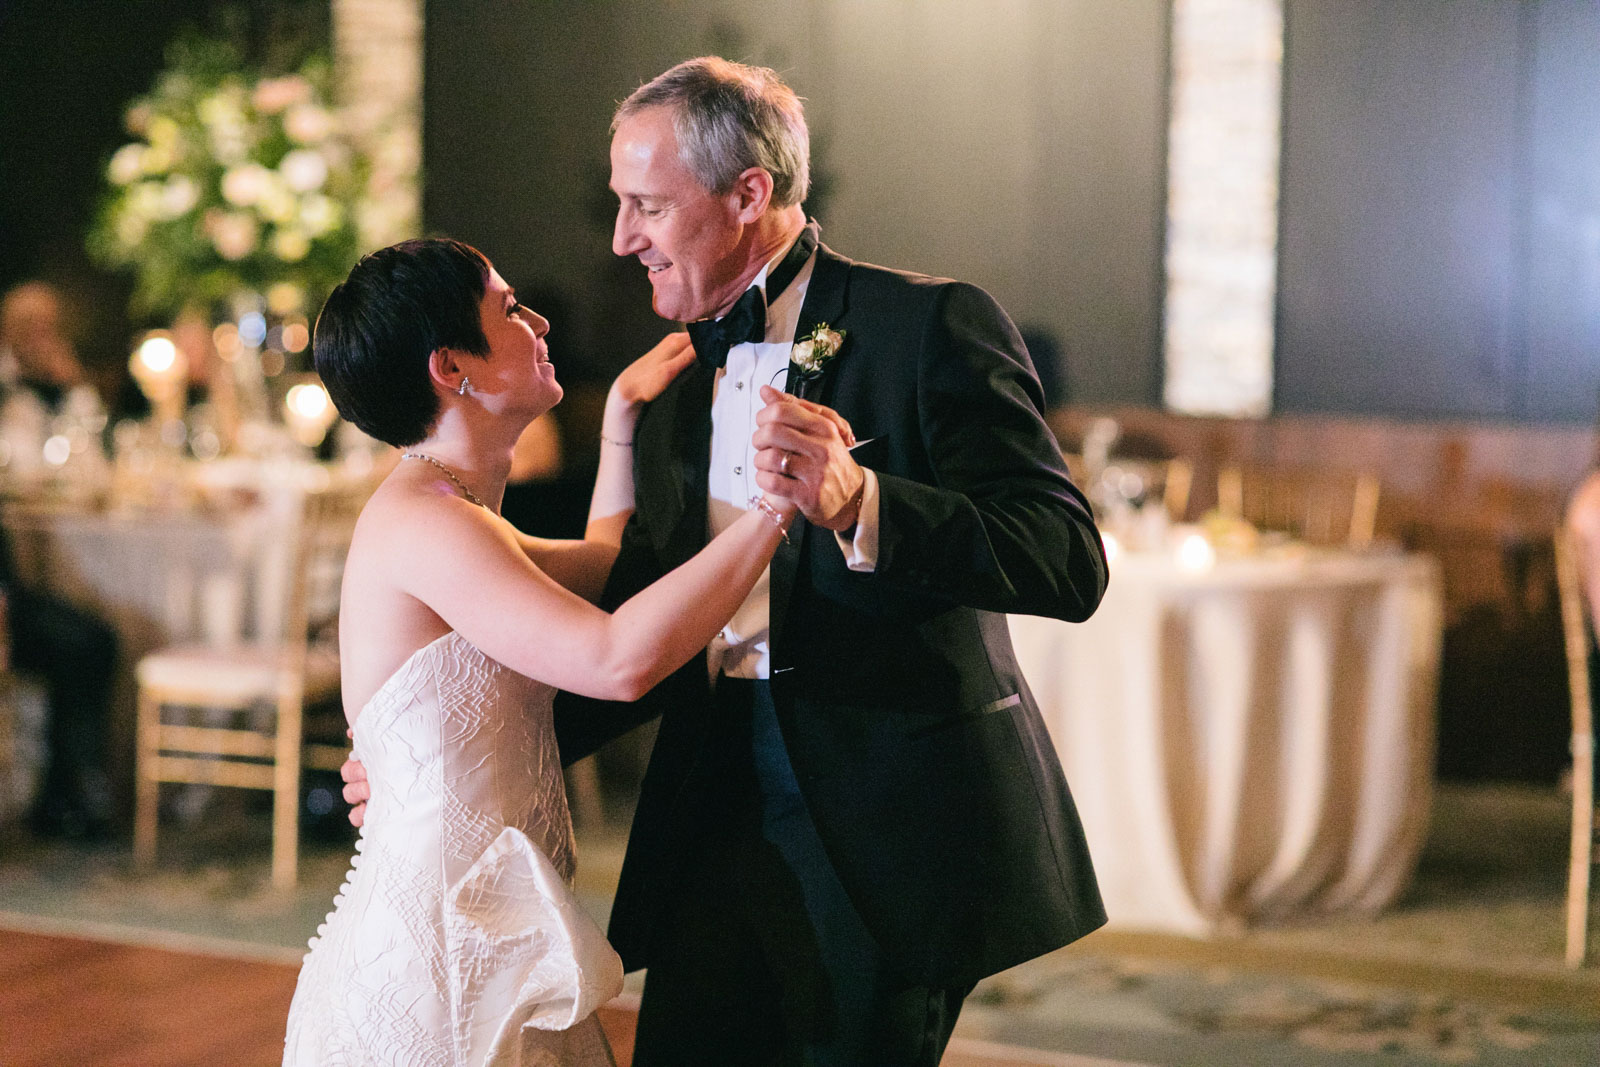 Father of the bride smiles proudly at bride during Father-daughter dance at Ritz-Carlton Boston